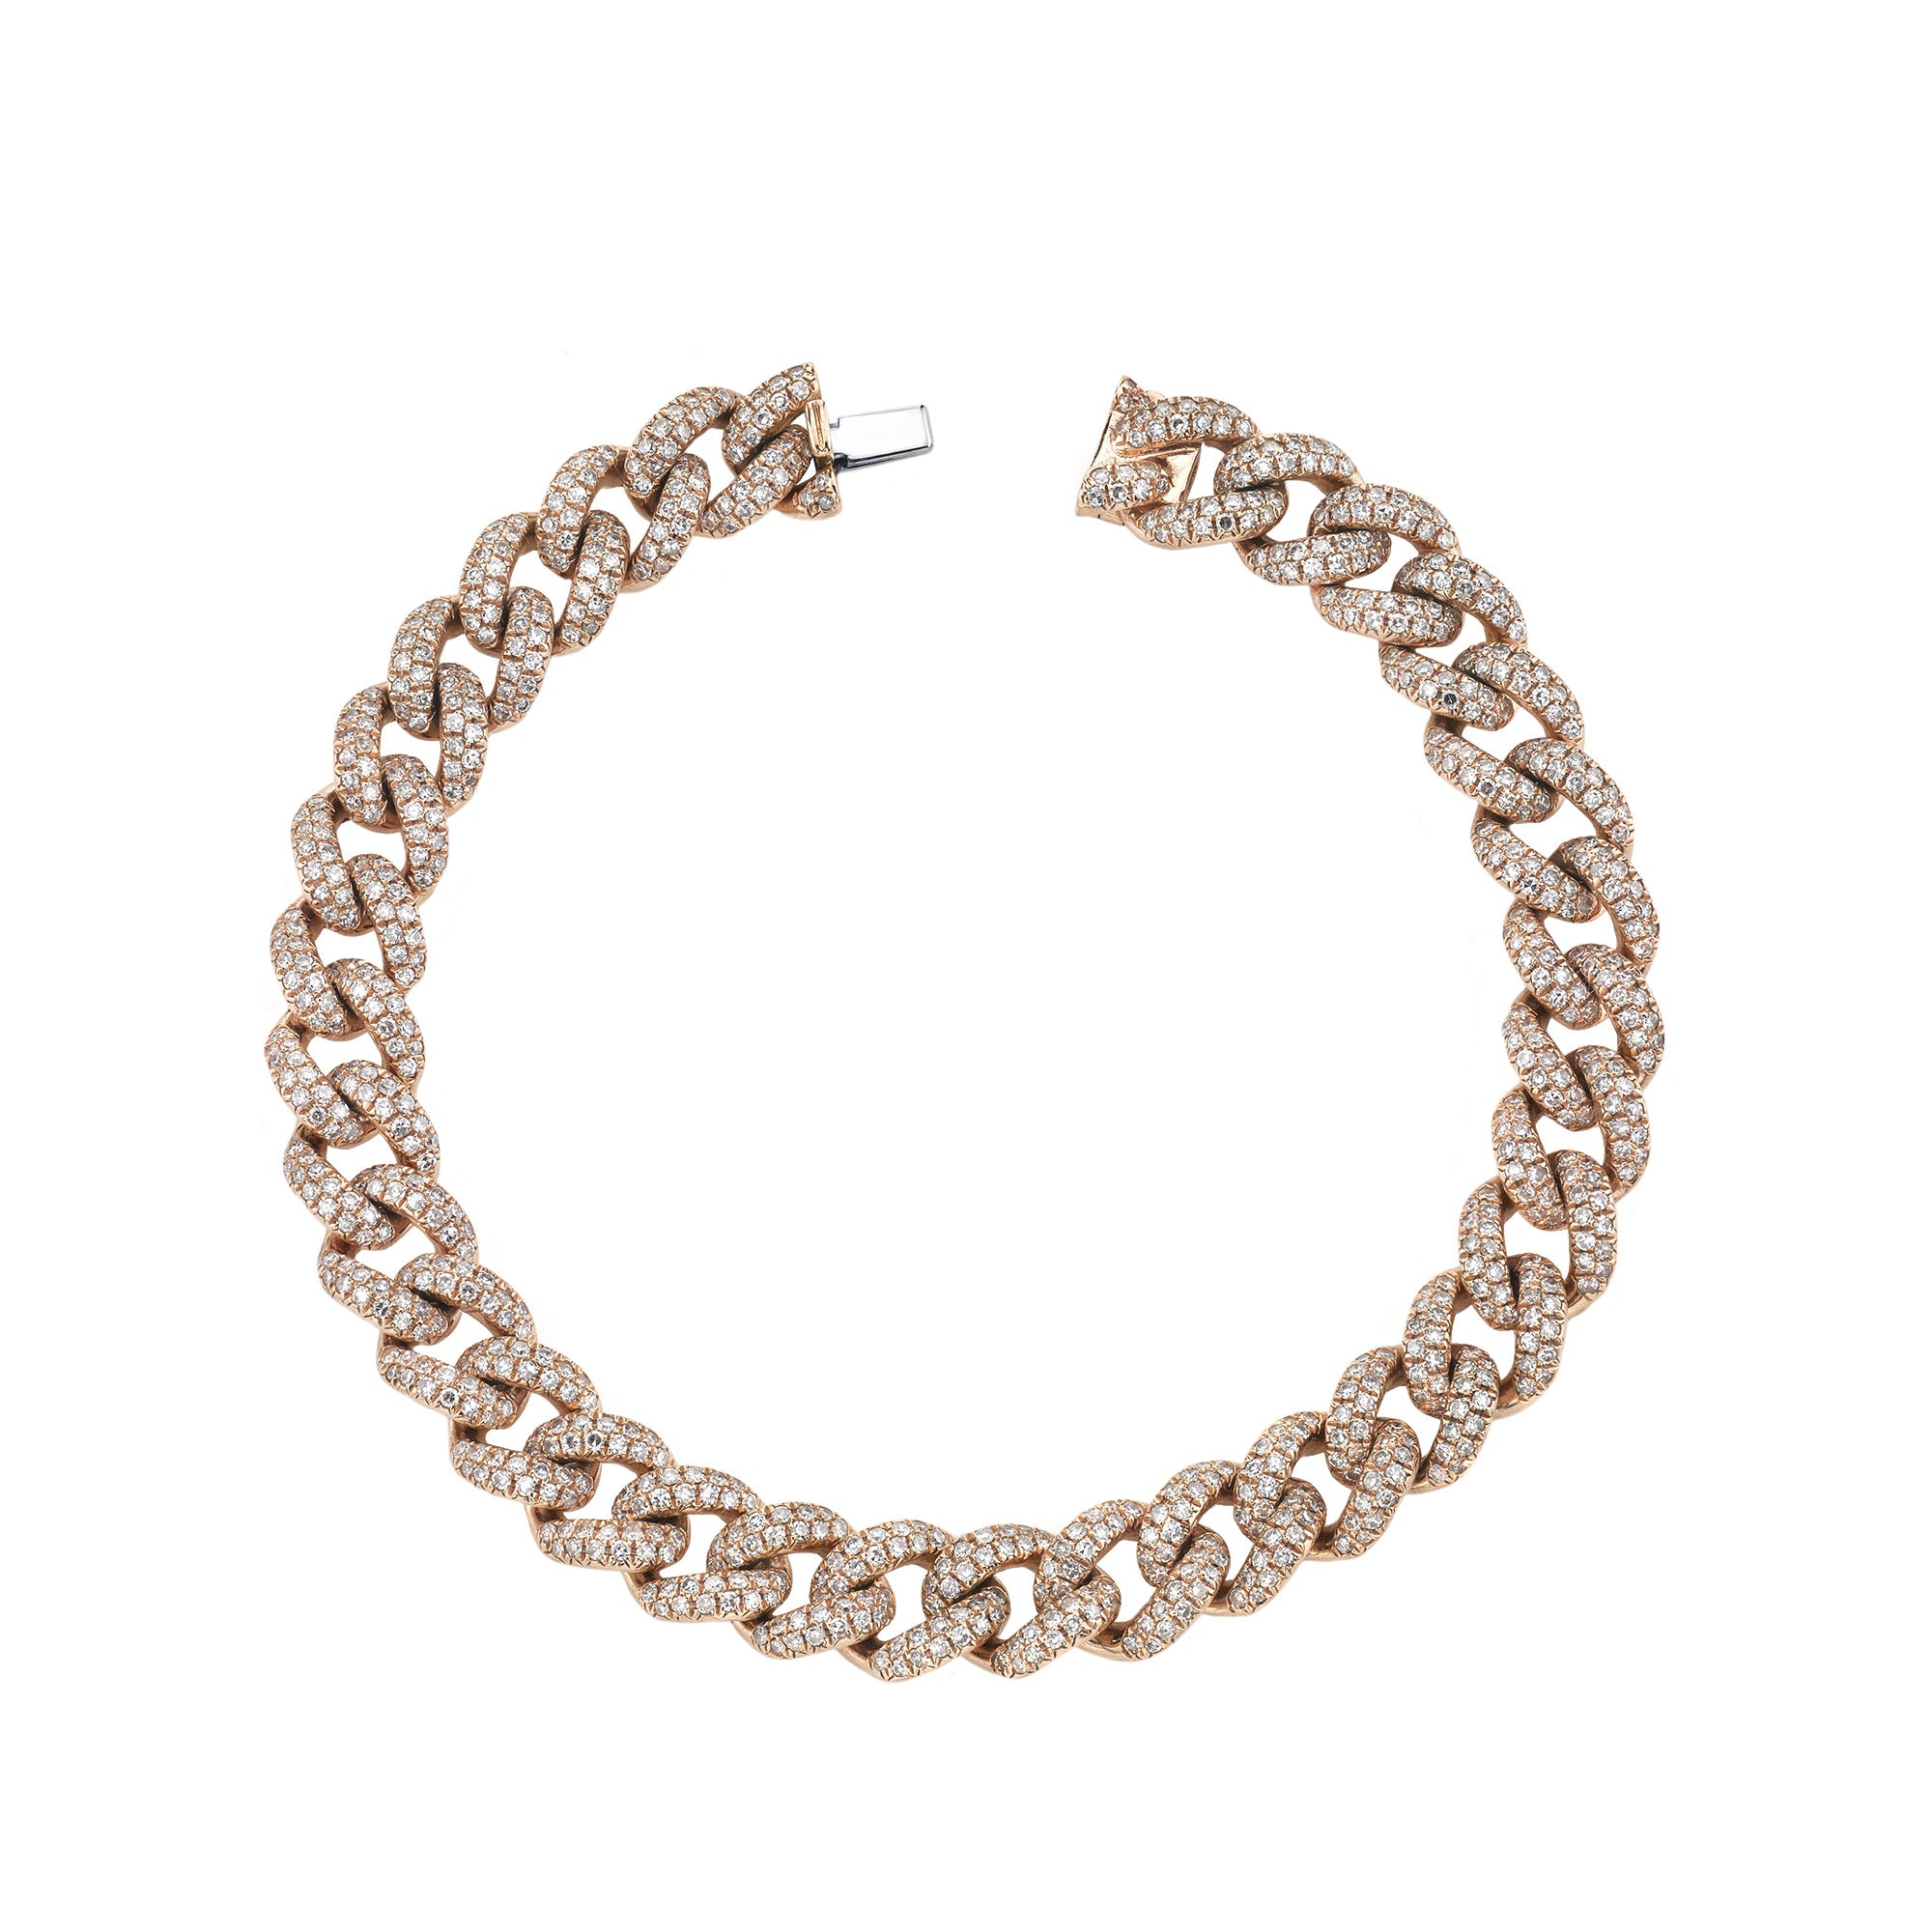 Rose Gold Medium Pave Link Bracelet - Shay - Bracelets | Broken English Jewelry